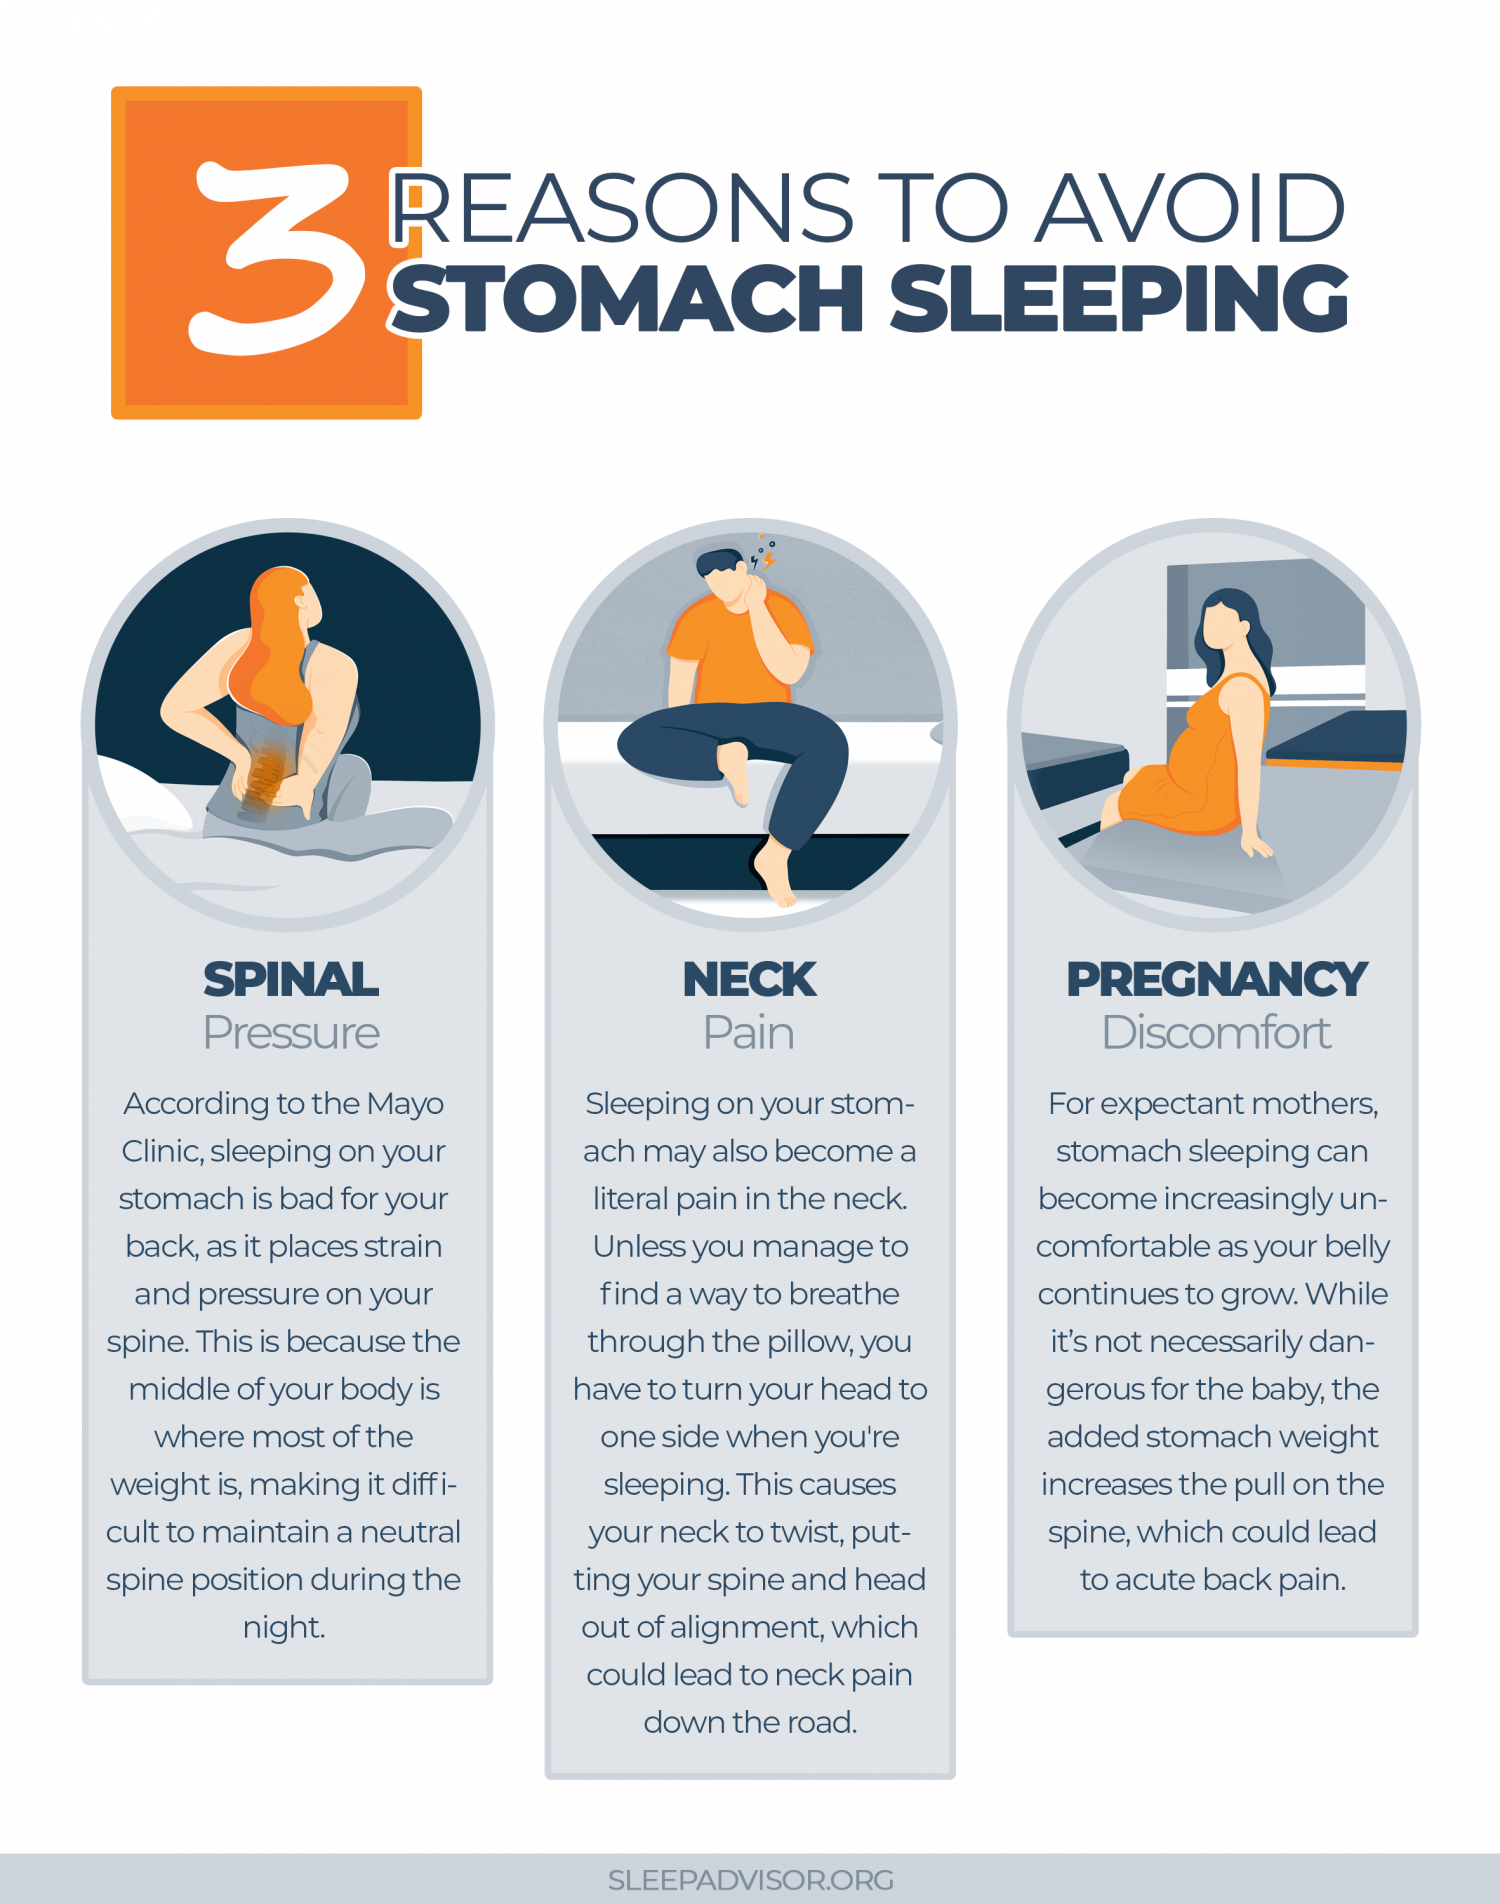 3 Reasons Why Sleeping On Your Stomach Is Bad For You Infographic